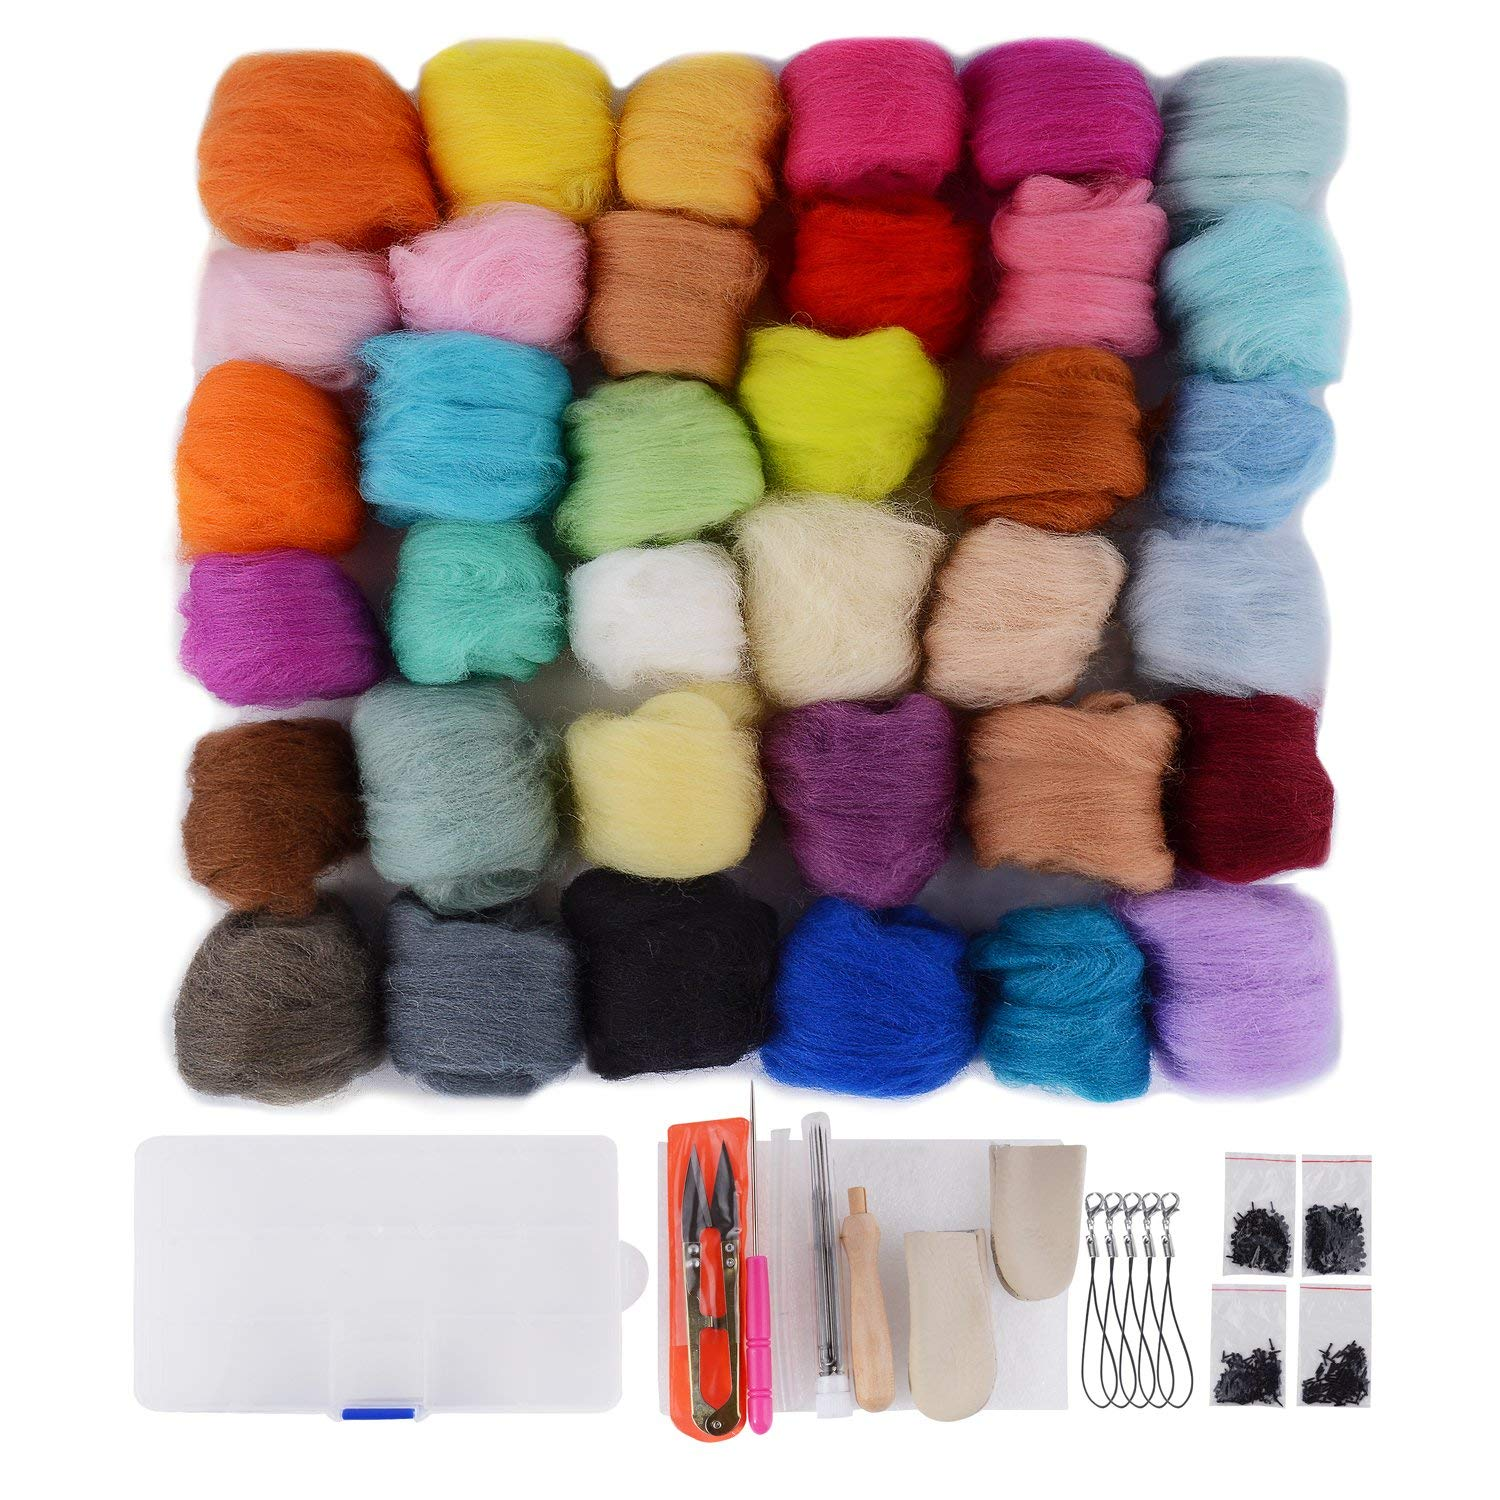 Felting Wool Misscrafts 45 Colors Wool Roving Fibre Needle Felting Supplies with Felting Tool Kit for DIY Felting Craft 45pcs Roving Wool 8pcs Felting Needles with Wooden Handle